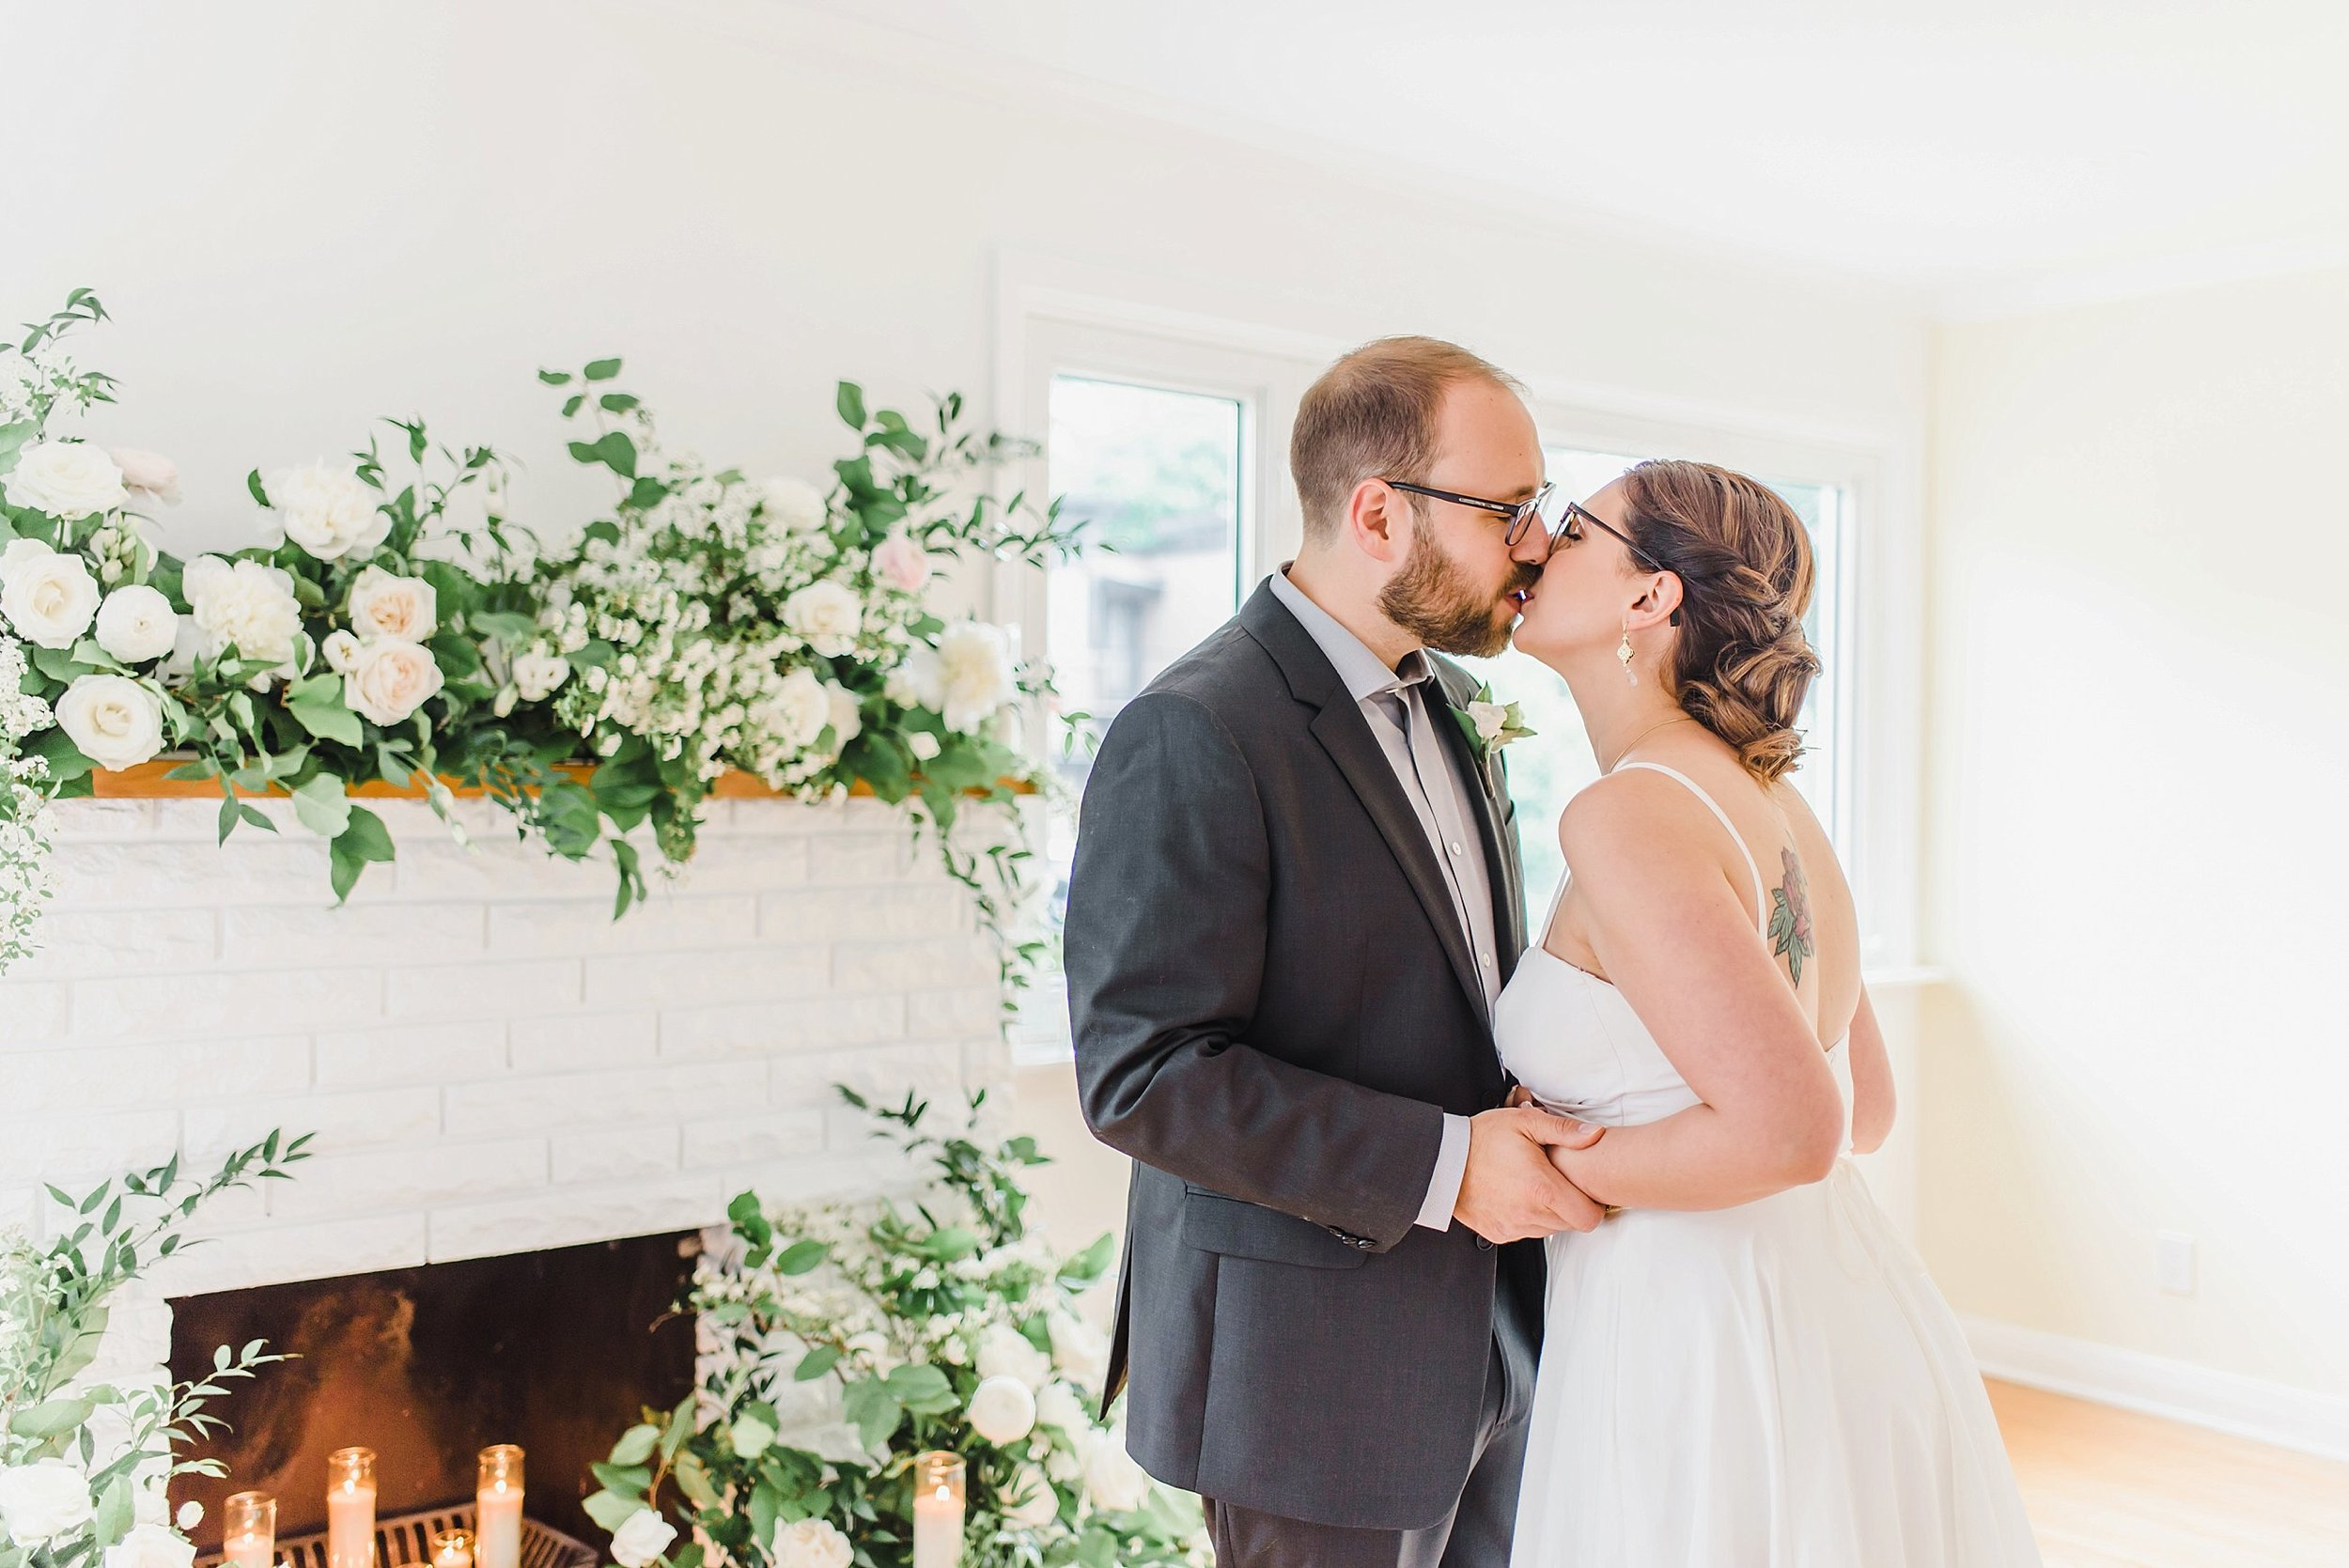 light airy indie fine art ottawa wedding photographer | Ali and Batoul Photography_1687.jpg